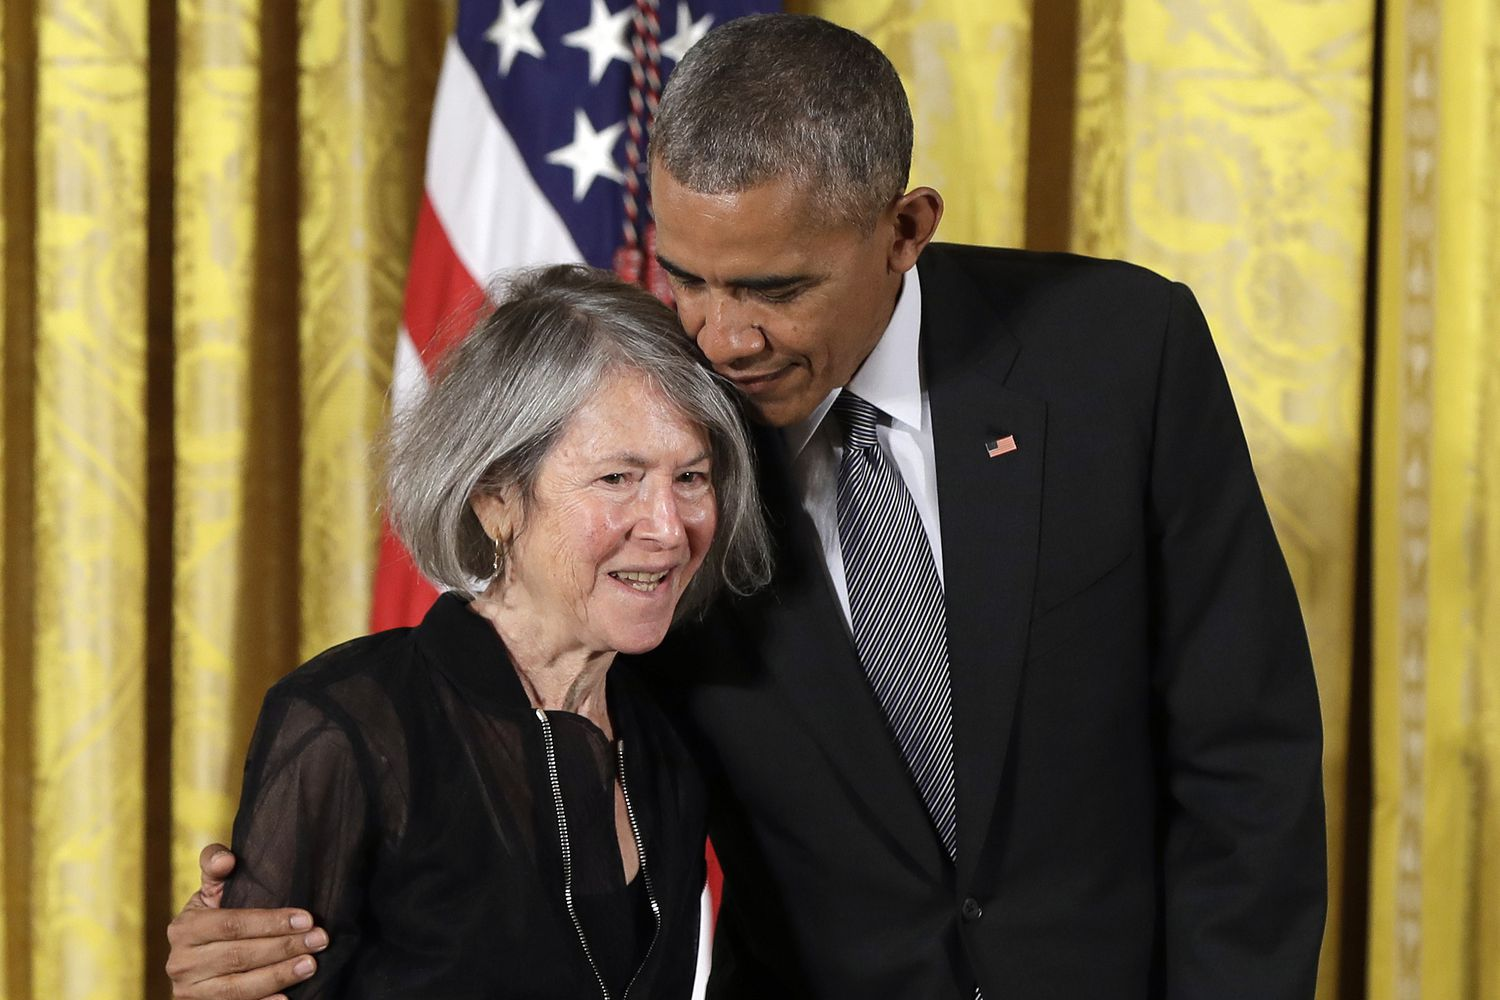 President Barack Obama embraces poet Louise Gluck before awarding her the 2015 National Humanities Medal during a ceremony in the East Room of the White House, Thursday, Sept. 22, 2016, in Washington. (AP Photo/Carolyn Kaster)